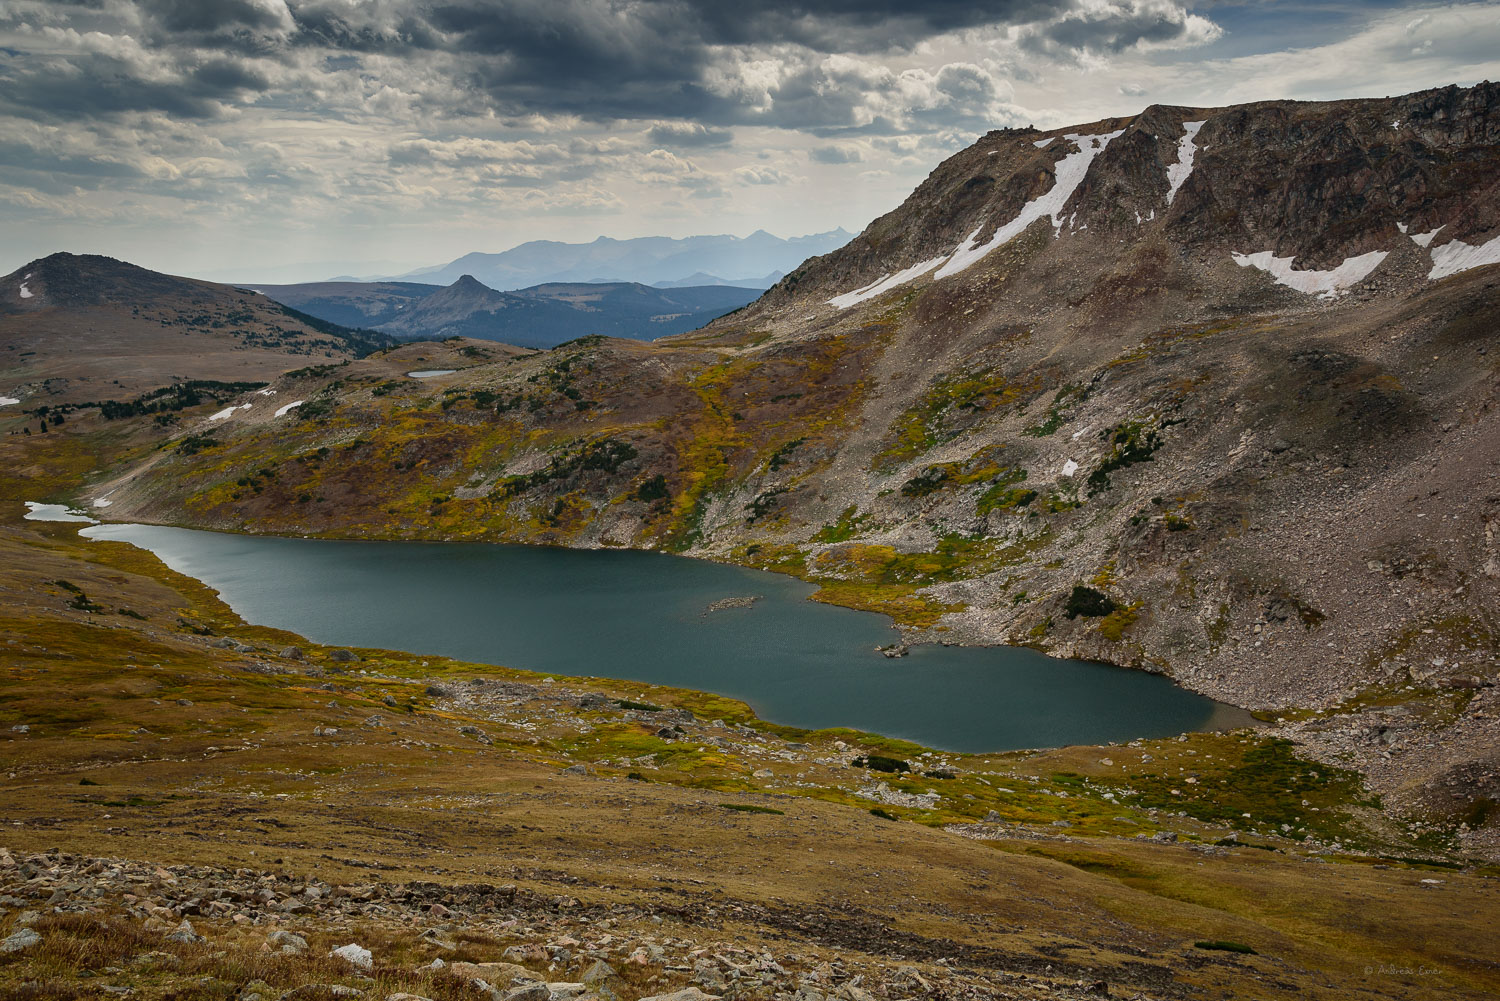 Overlook at Beartooth Pass (3,347 m / 10,947 ft)